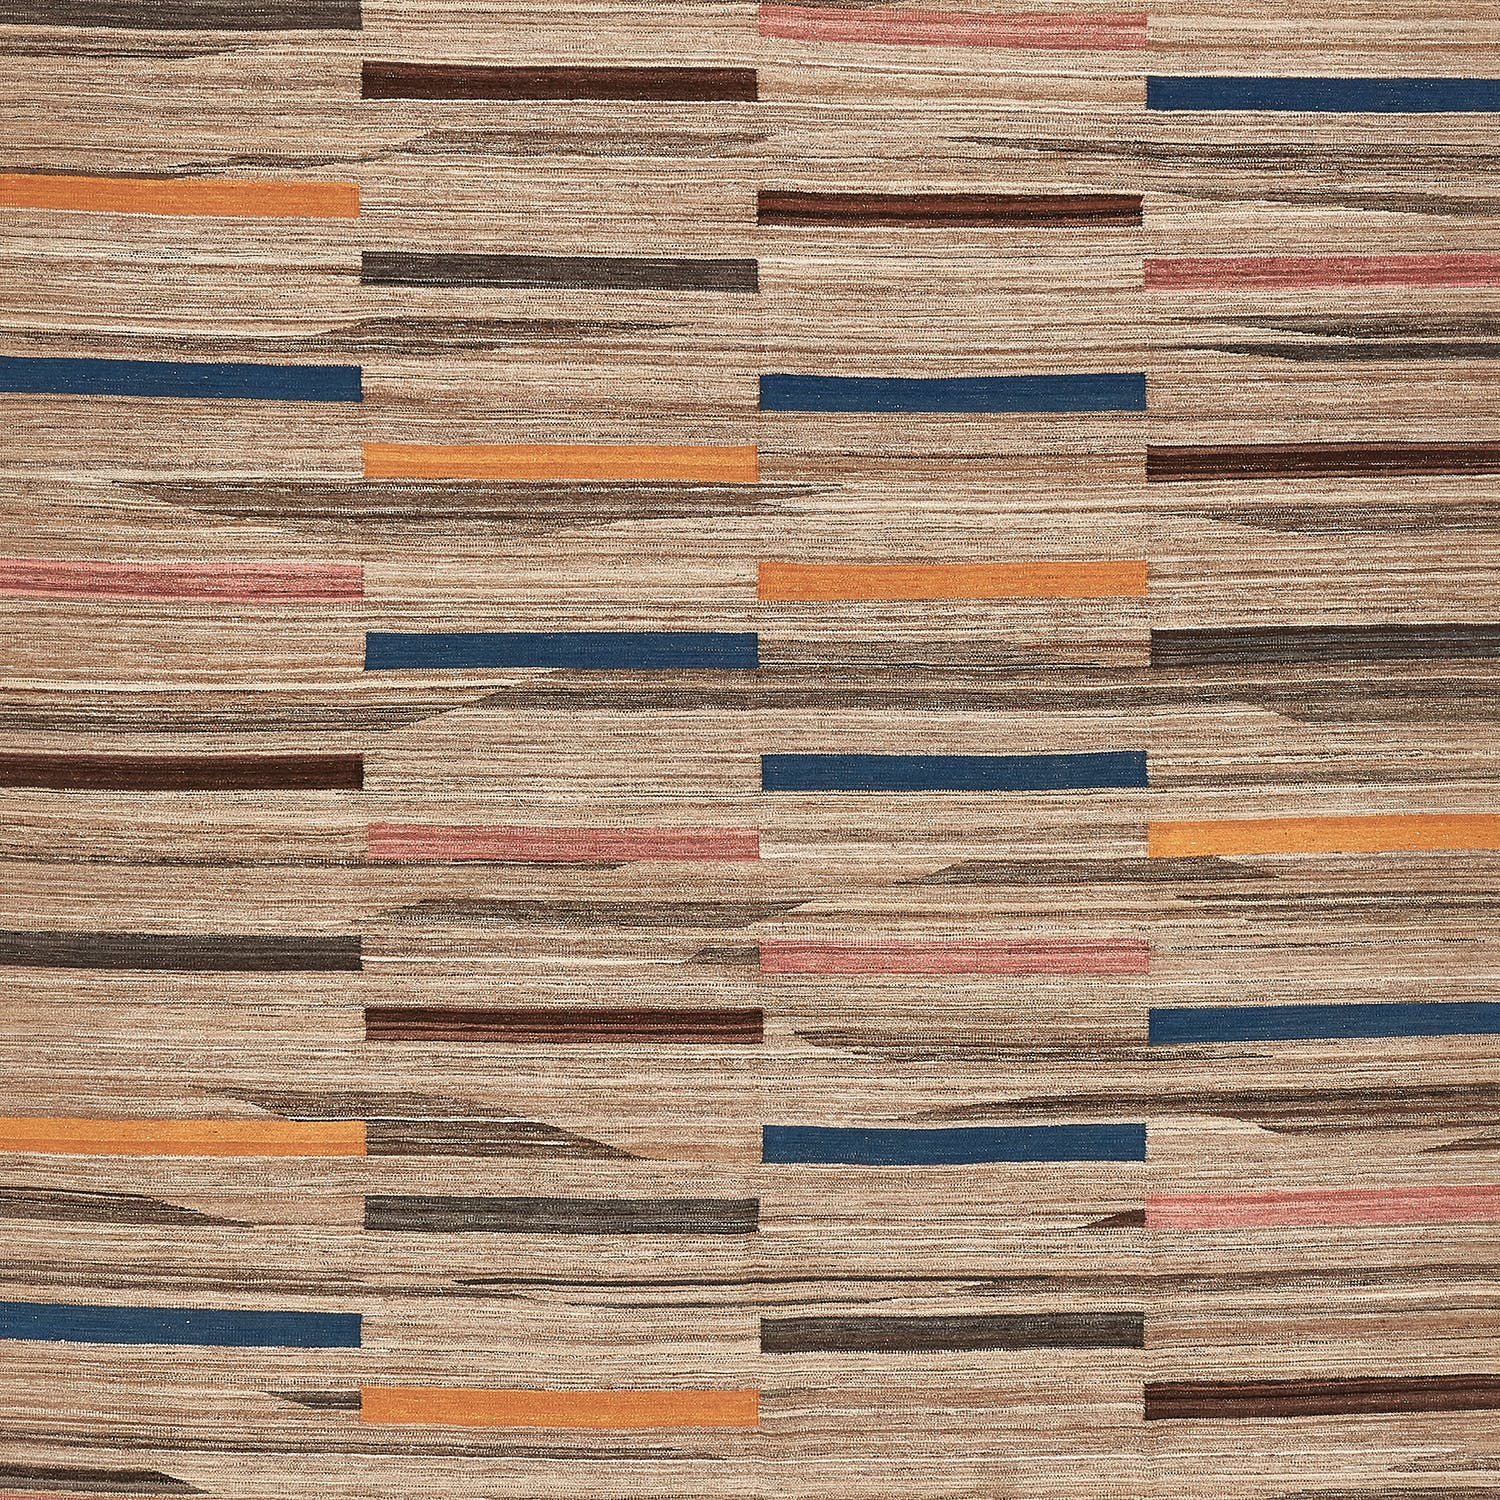 Contemporary Flat Weave Rug - 9'x12'